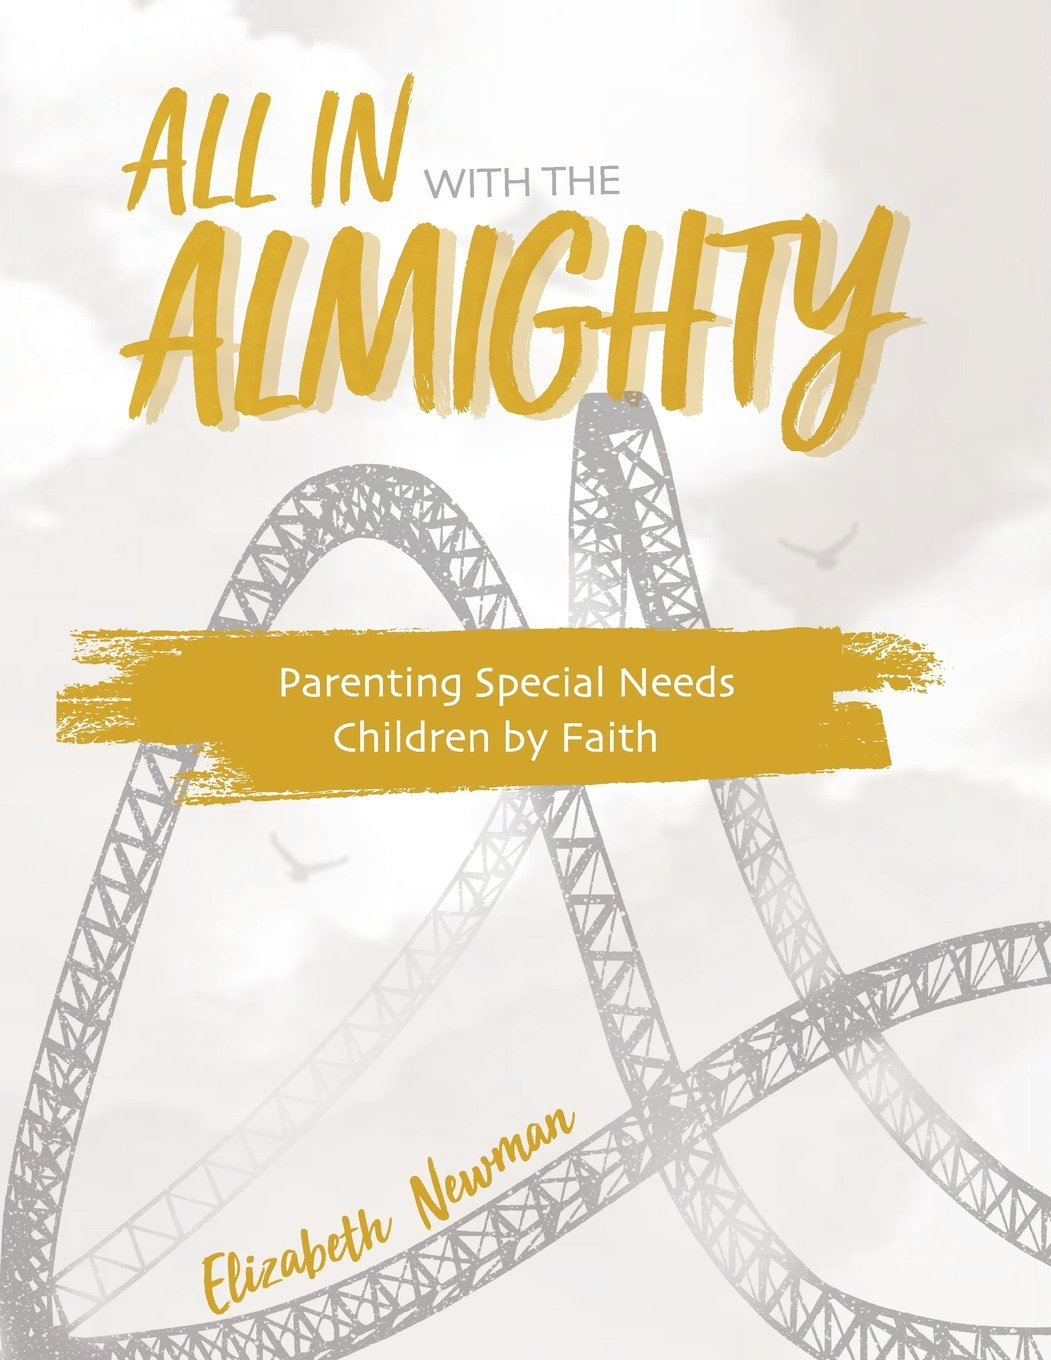 All In with The Almighty: Parenting Special Needs Children by Faith